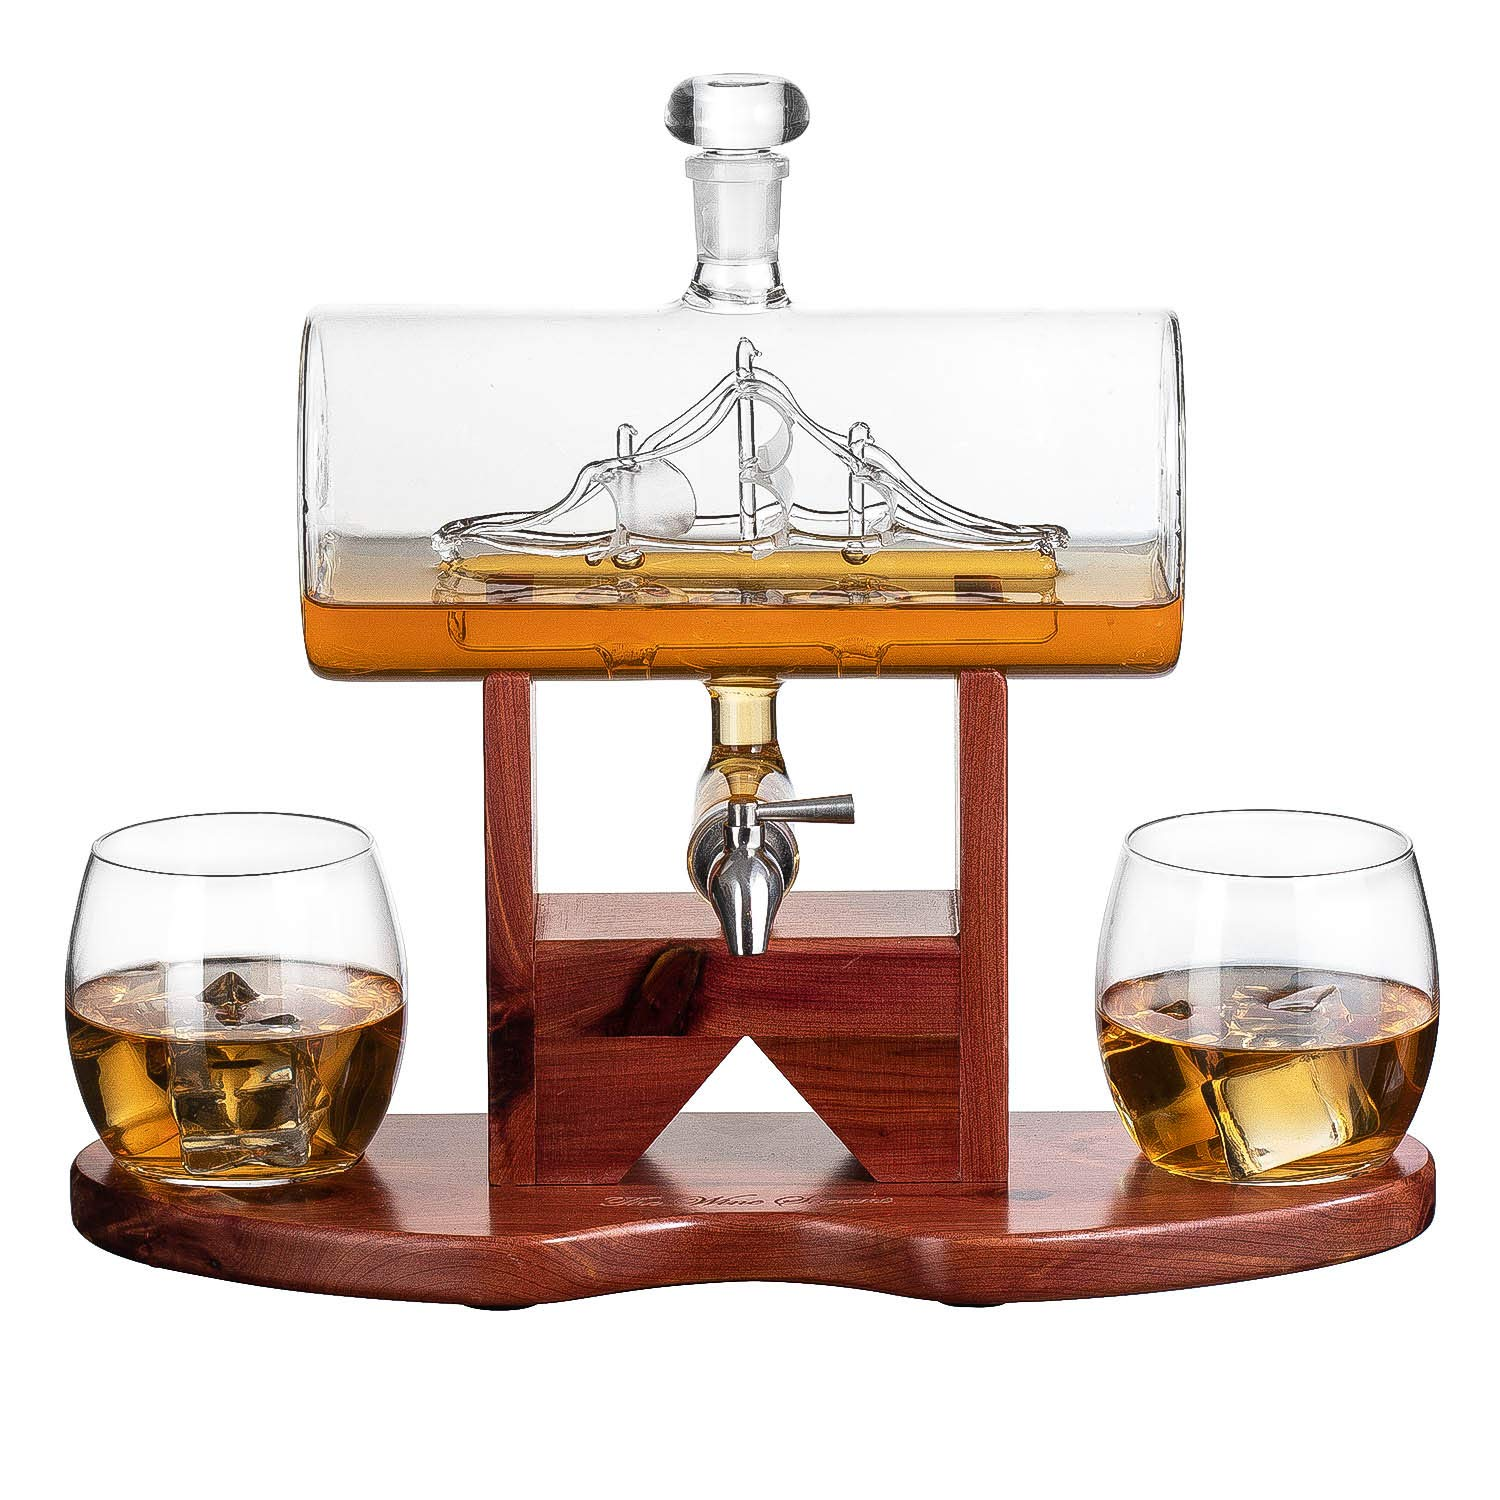 Whiskey Decanter Ship Set - With 2 Glasses and Beautiful Stand Gift for Dad, Husband or Boyfriend by The Wine Savant by The Wine Savant